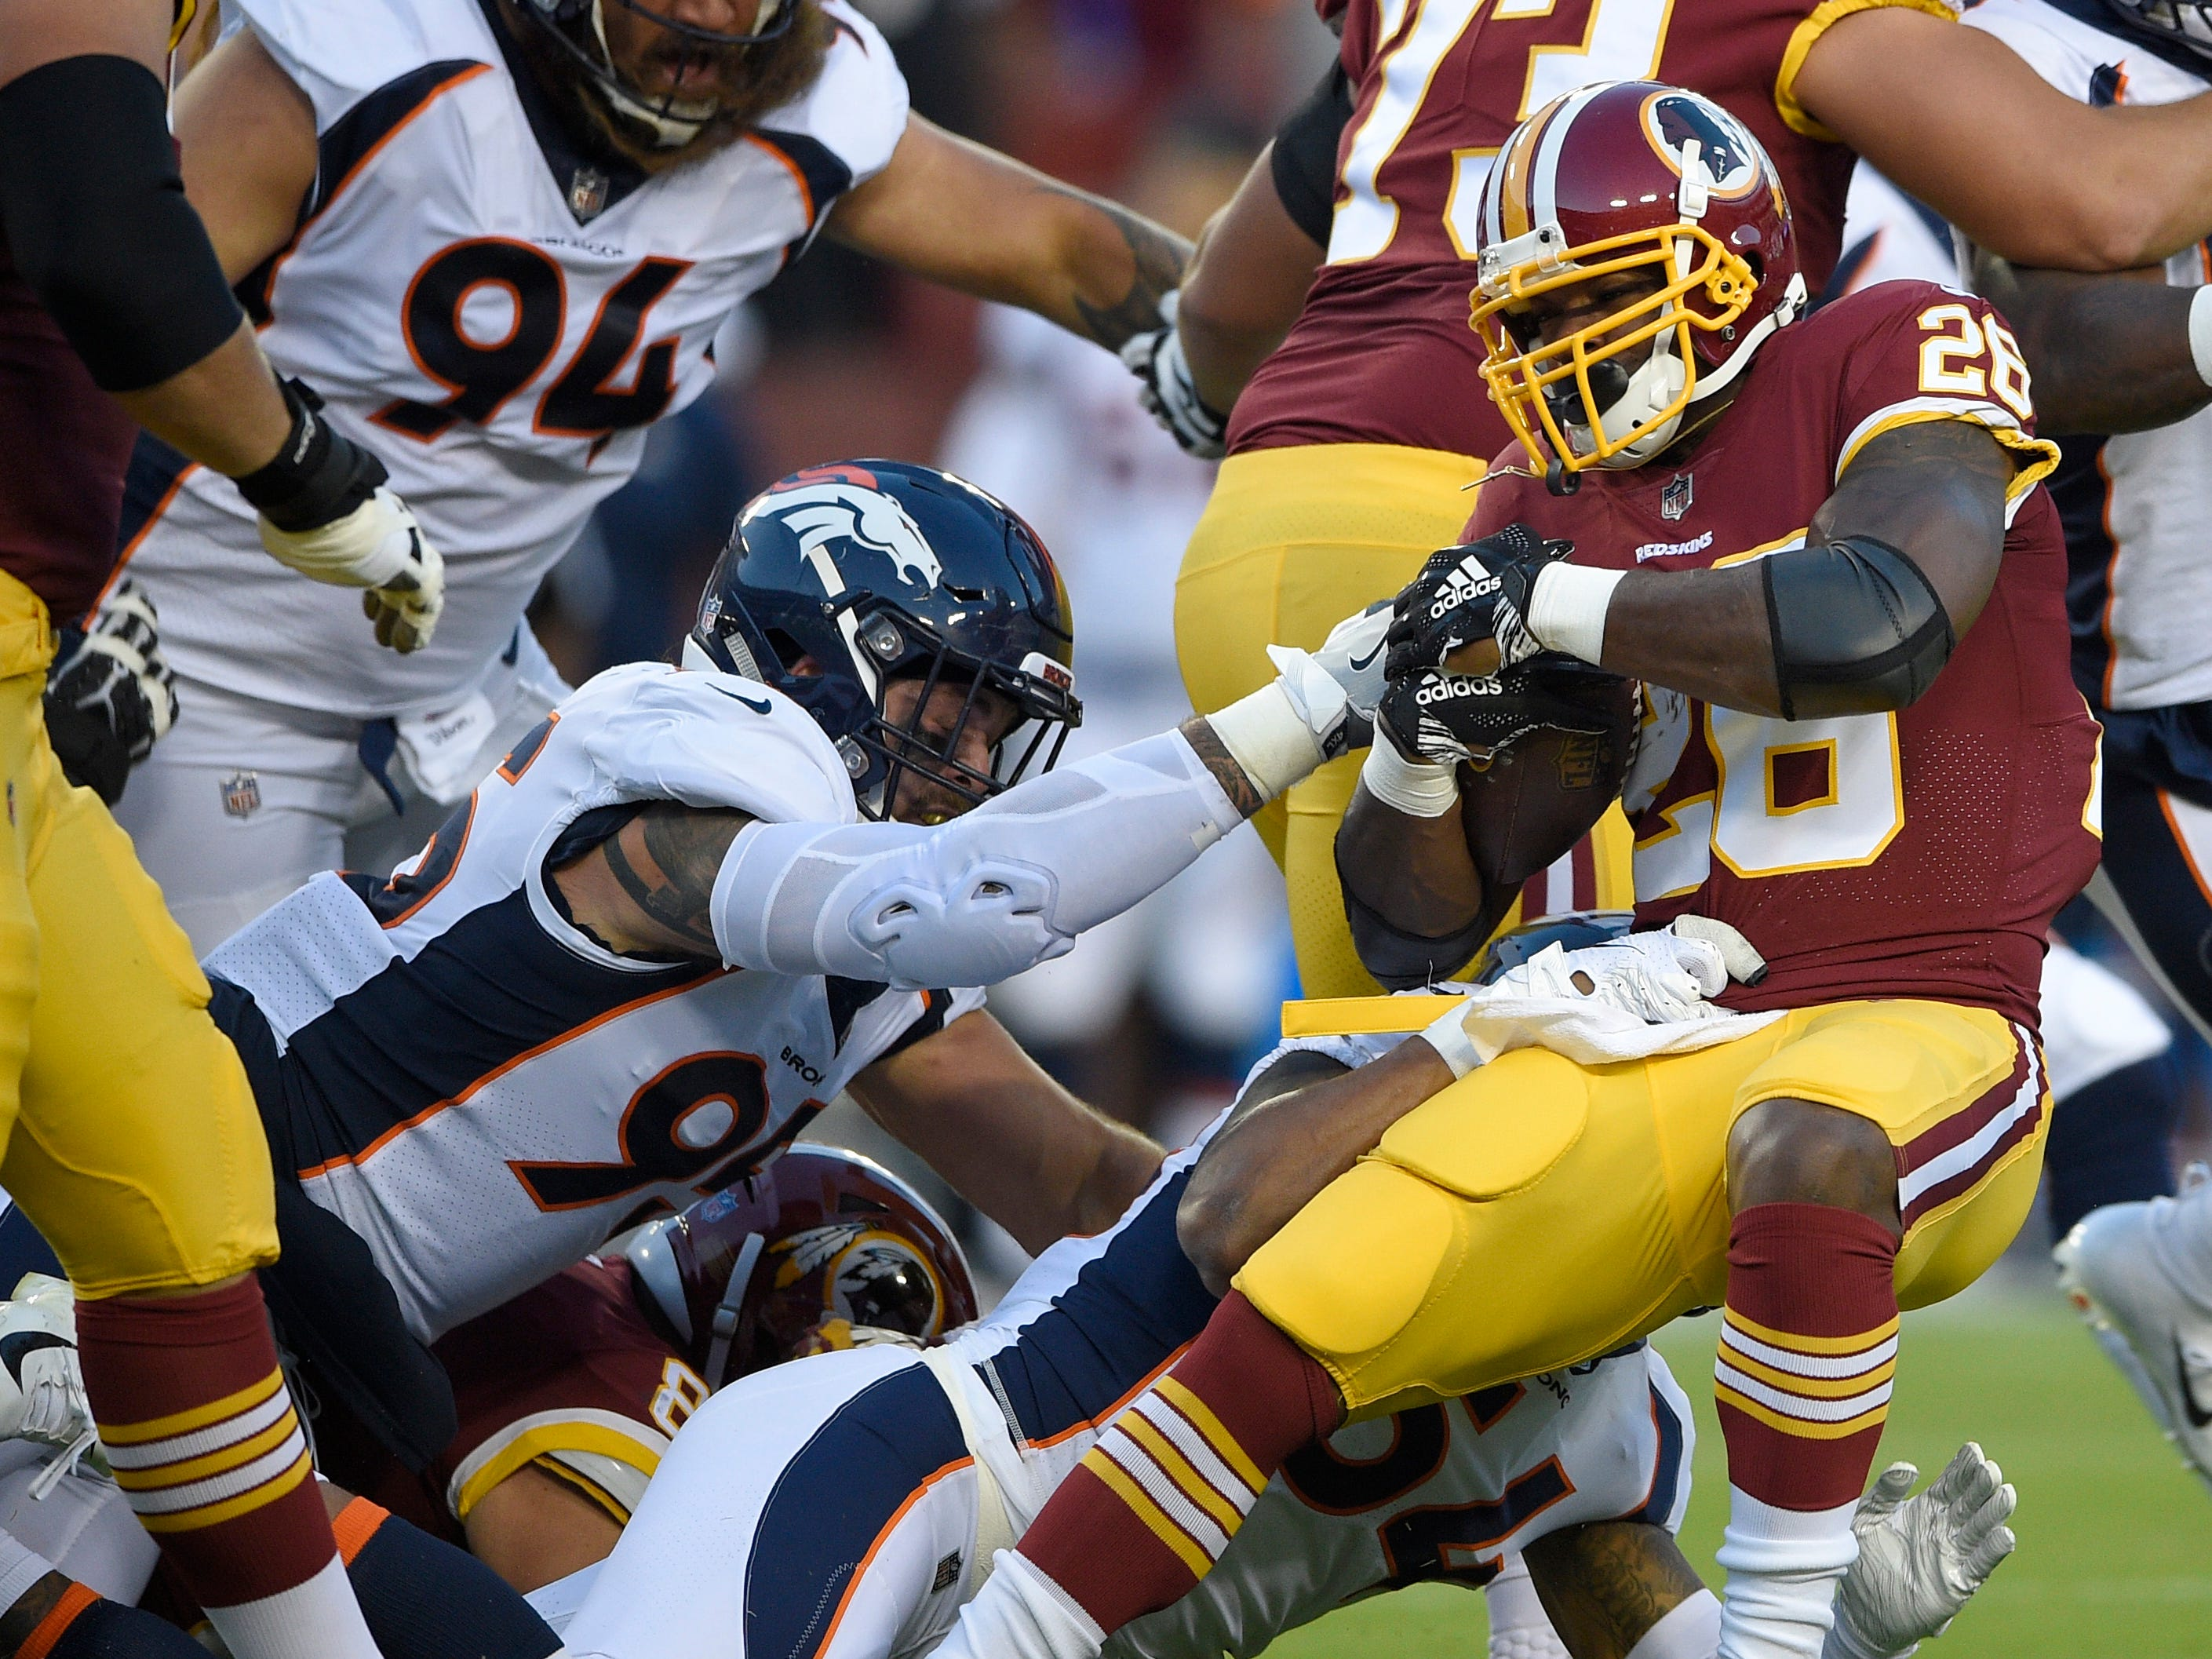 Washington Redskins running back Adrian Peterson (26) is tackled by Denver Broncos linebacker Brandon Marshall, back bottom, defensive end Derek Wolfe, left, during the first half of a preseason NFL football game, Friday, Aug. 24, 2018, in Landover, Md.